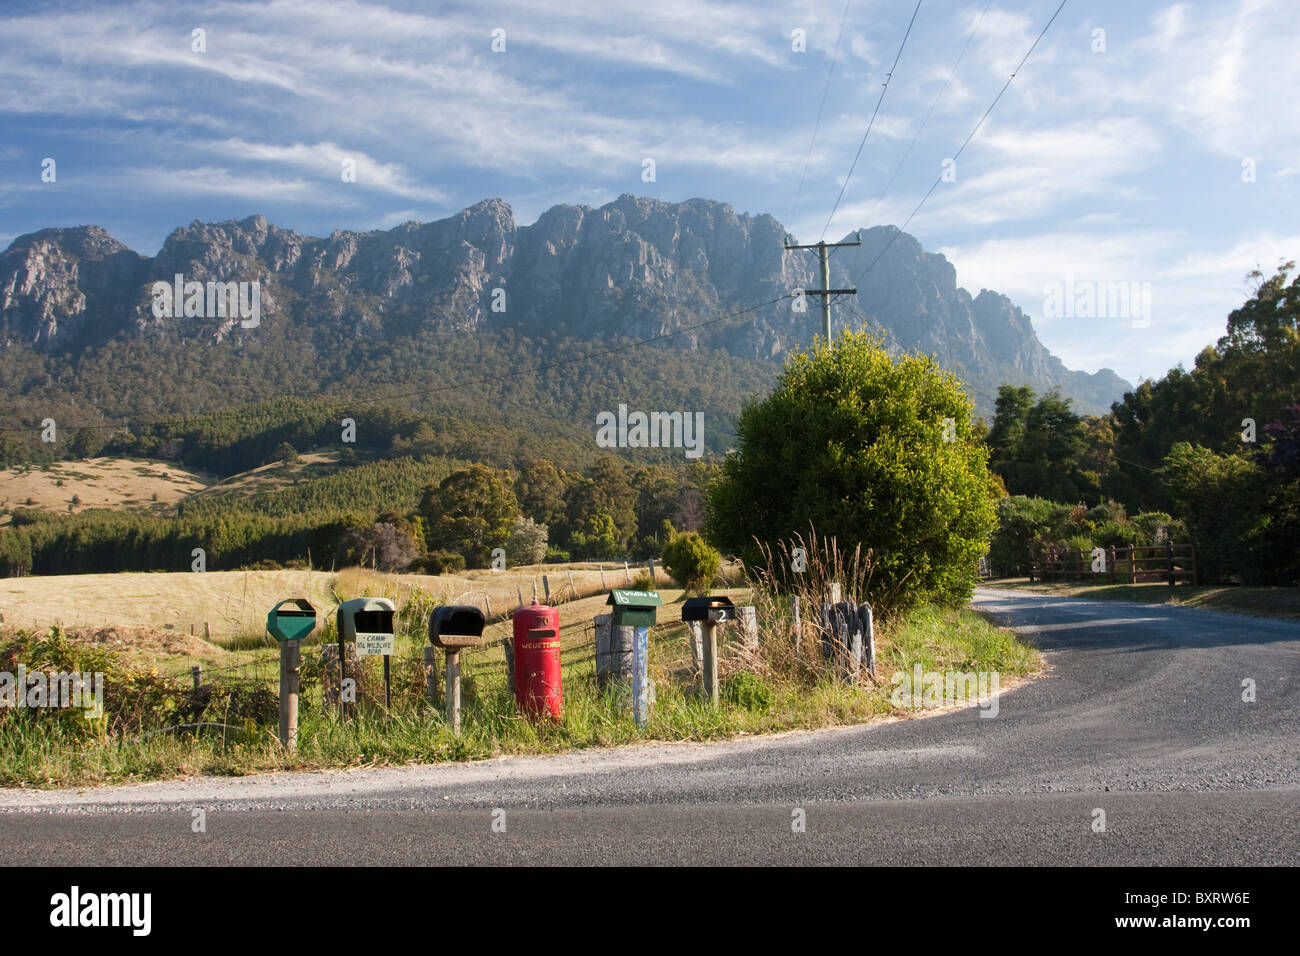 Australia, Tasmania, Central north, Mount Roland, View of postboxes along roadside - Stock Image